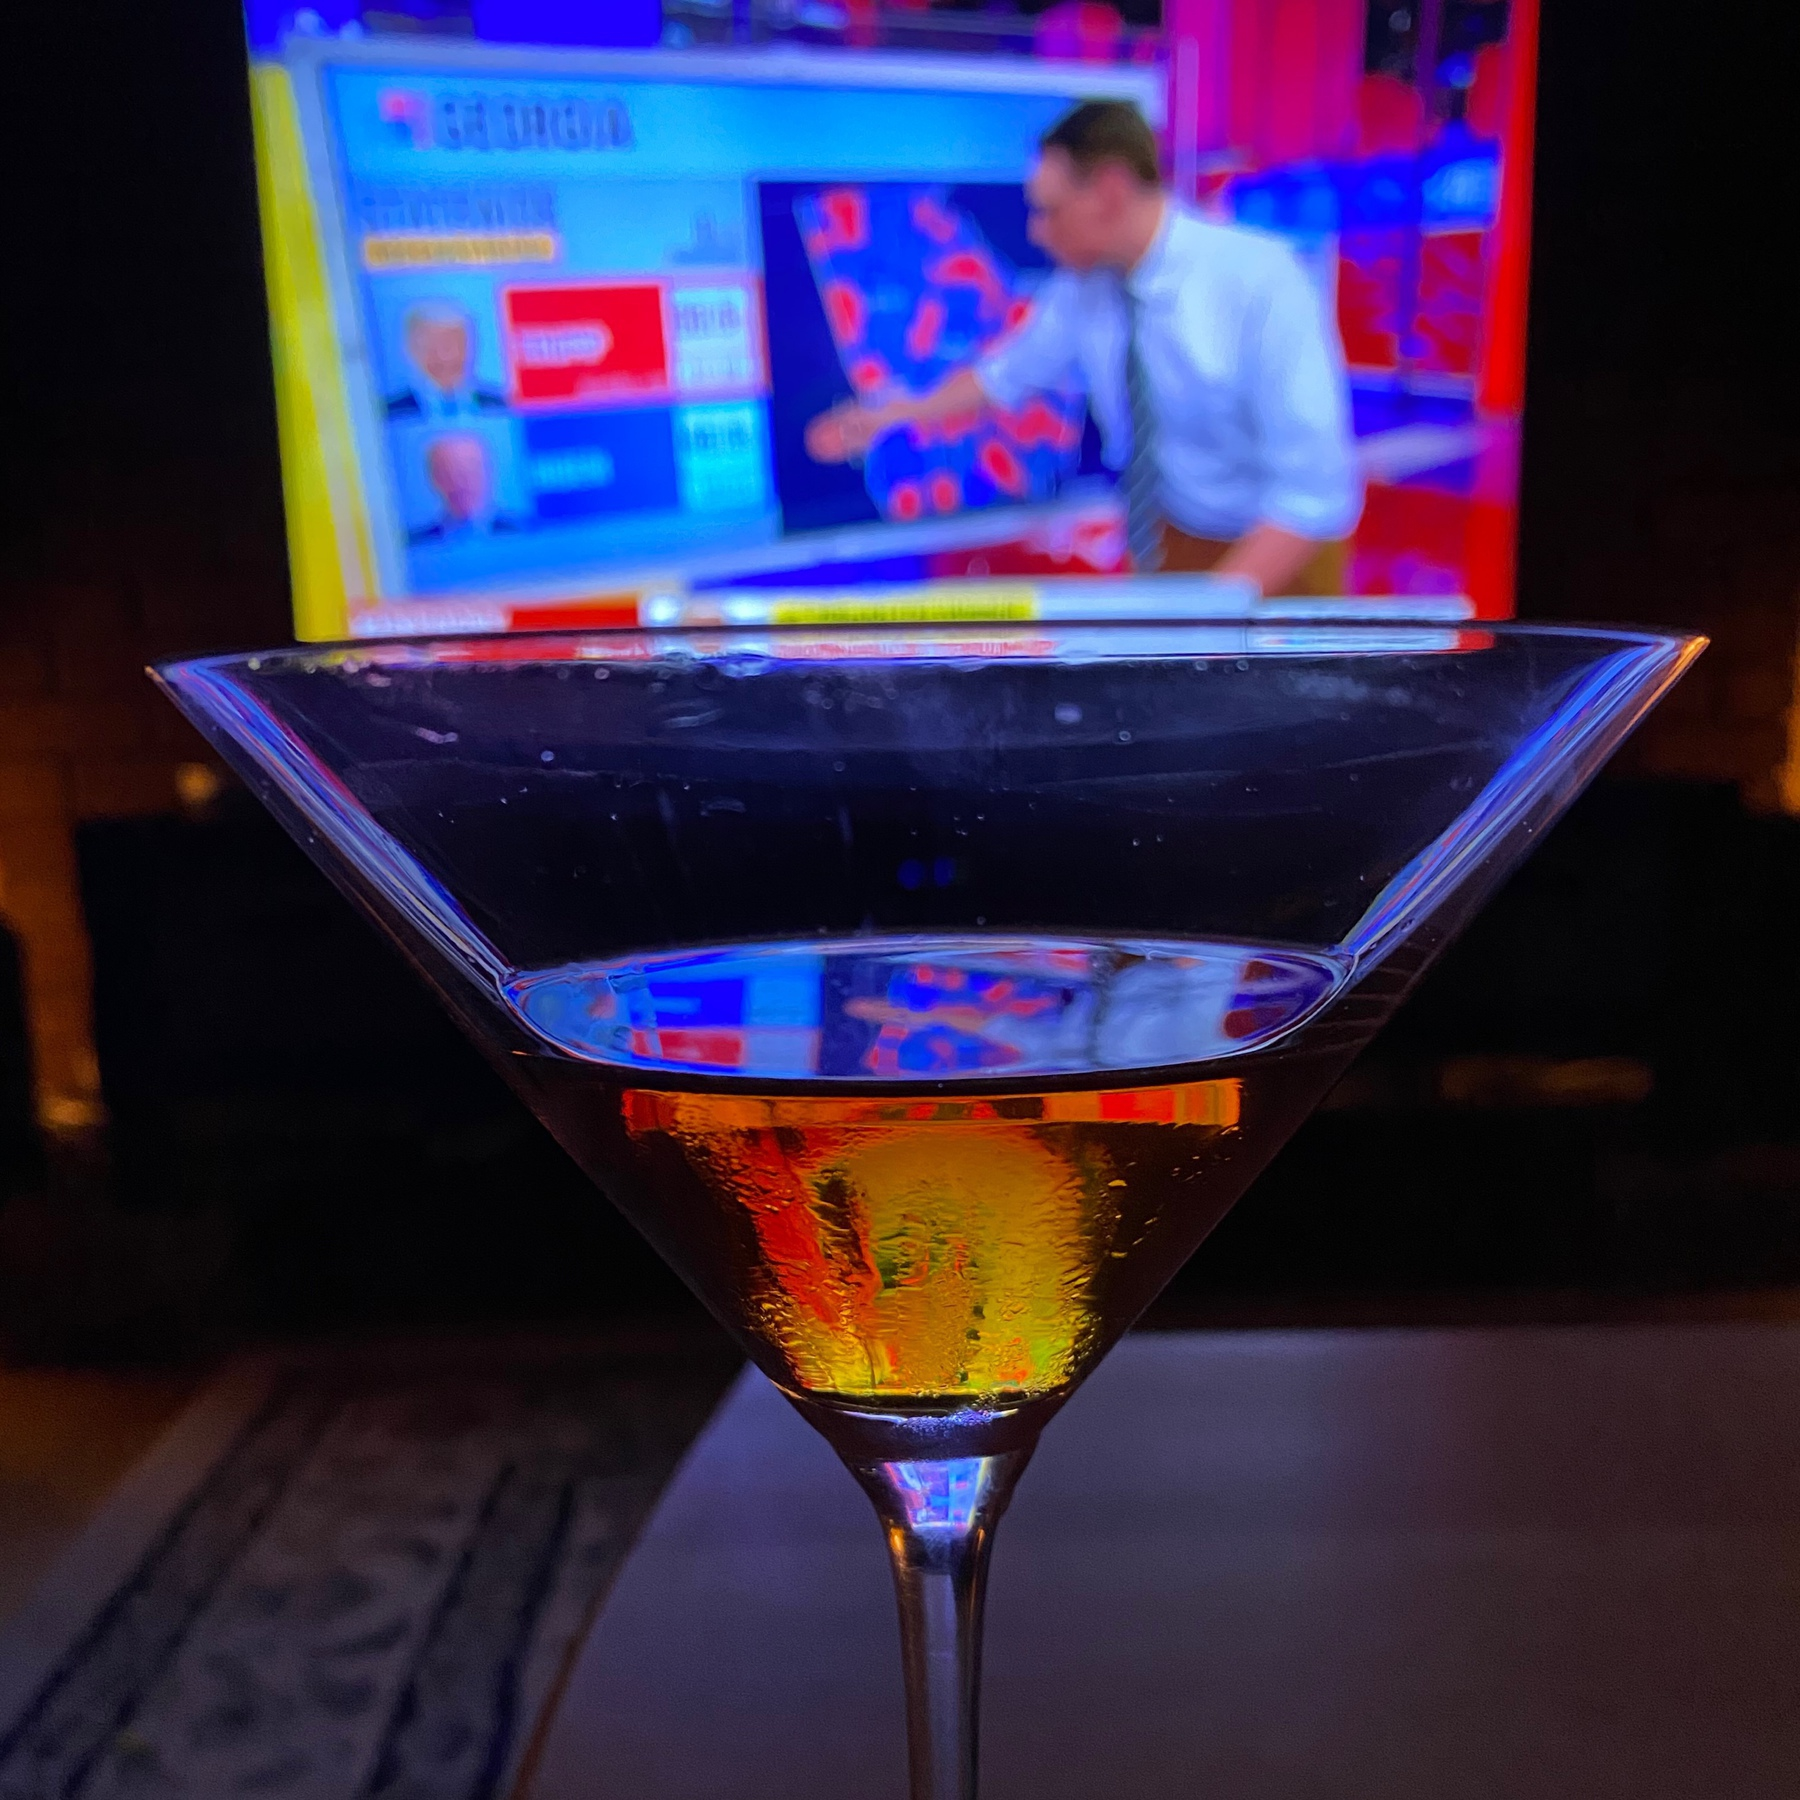 Martini glass with television in background.